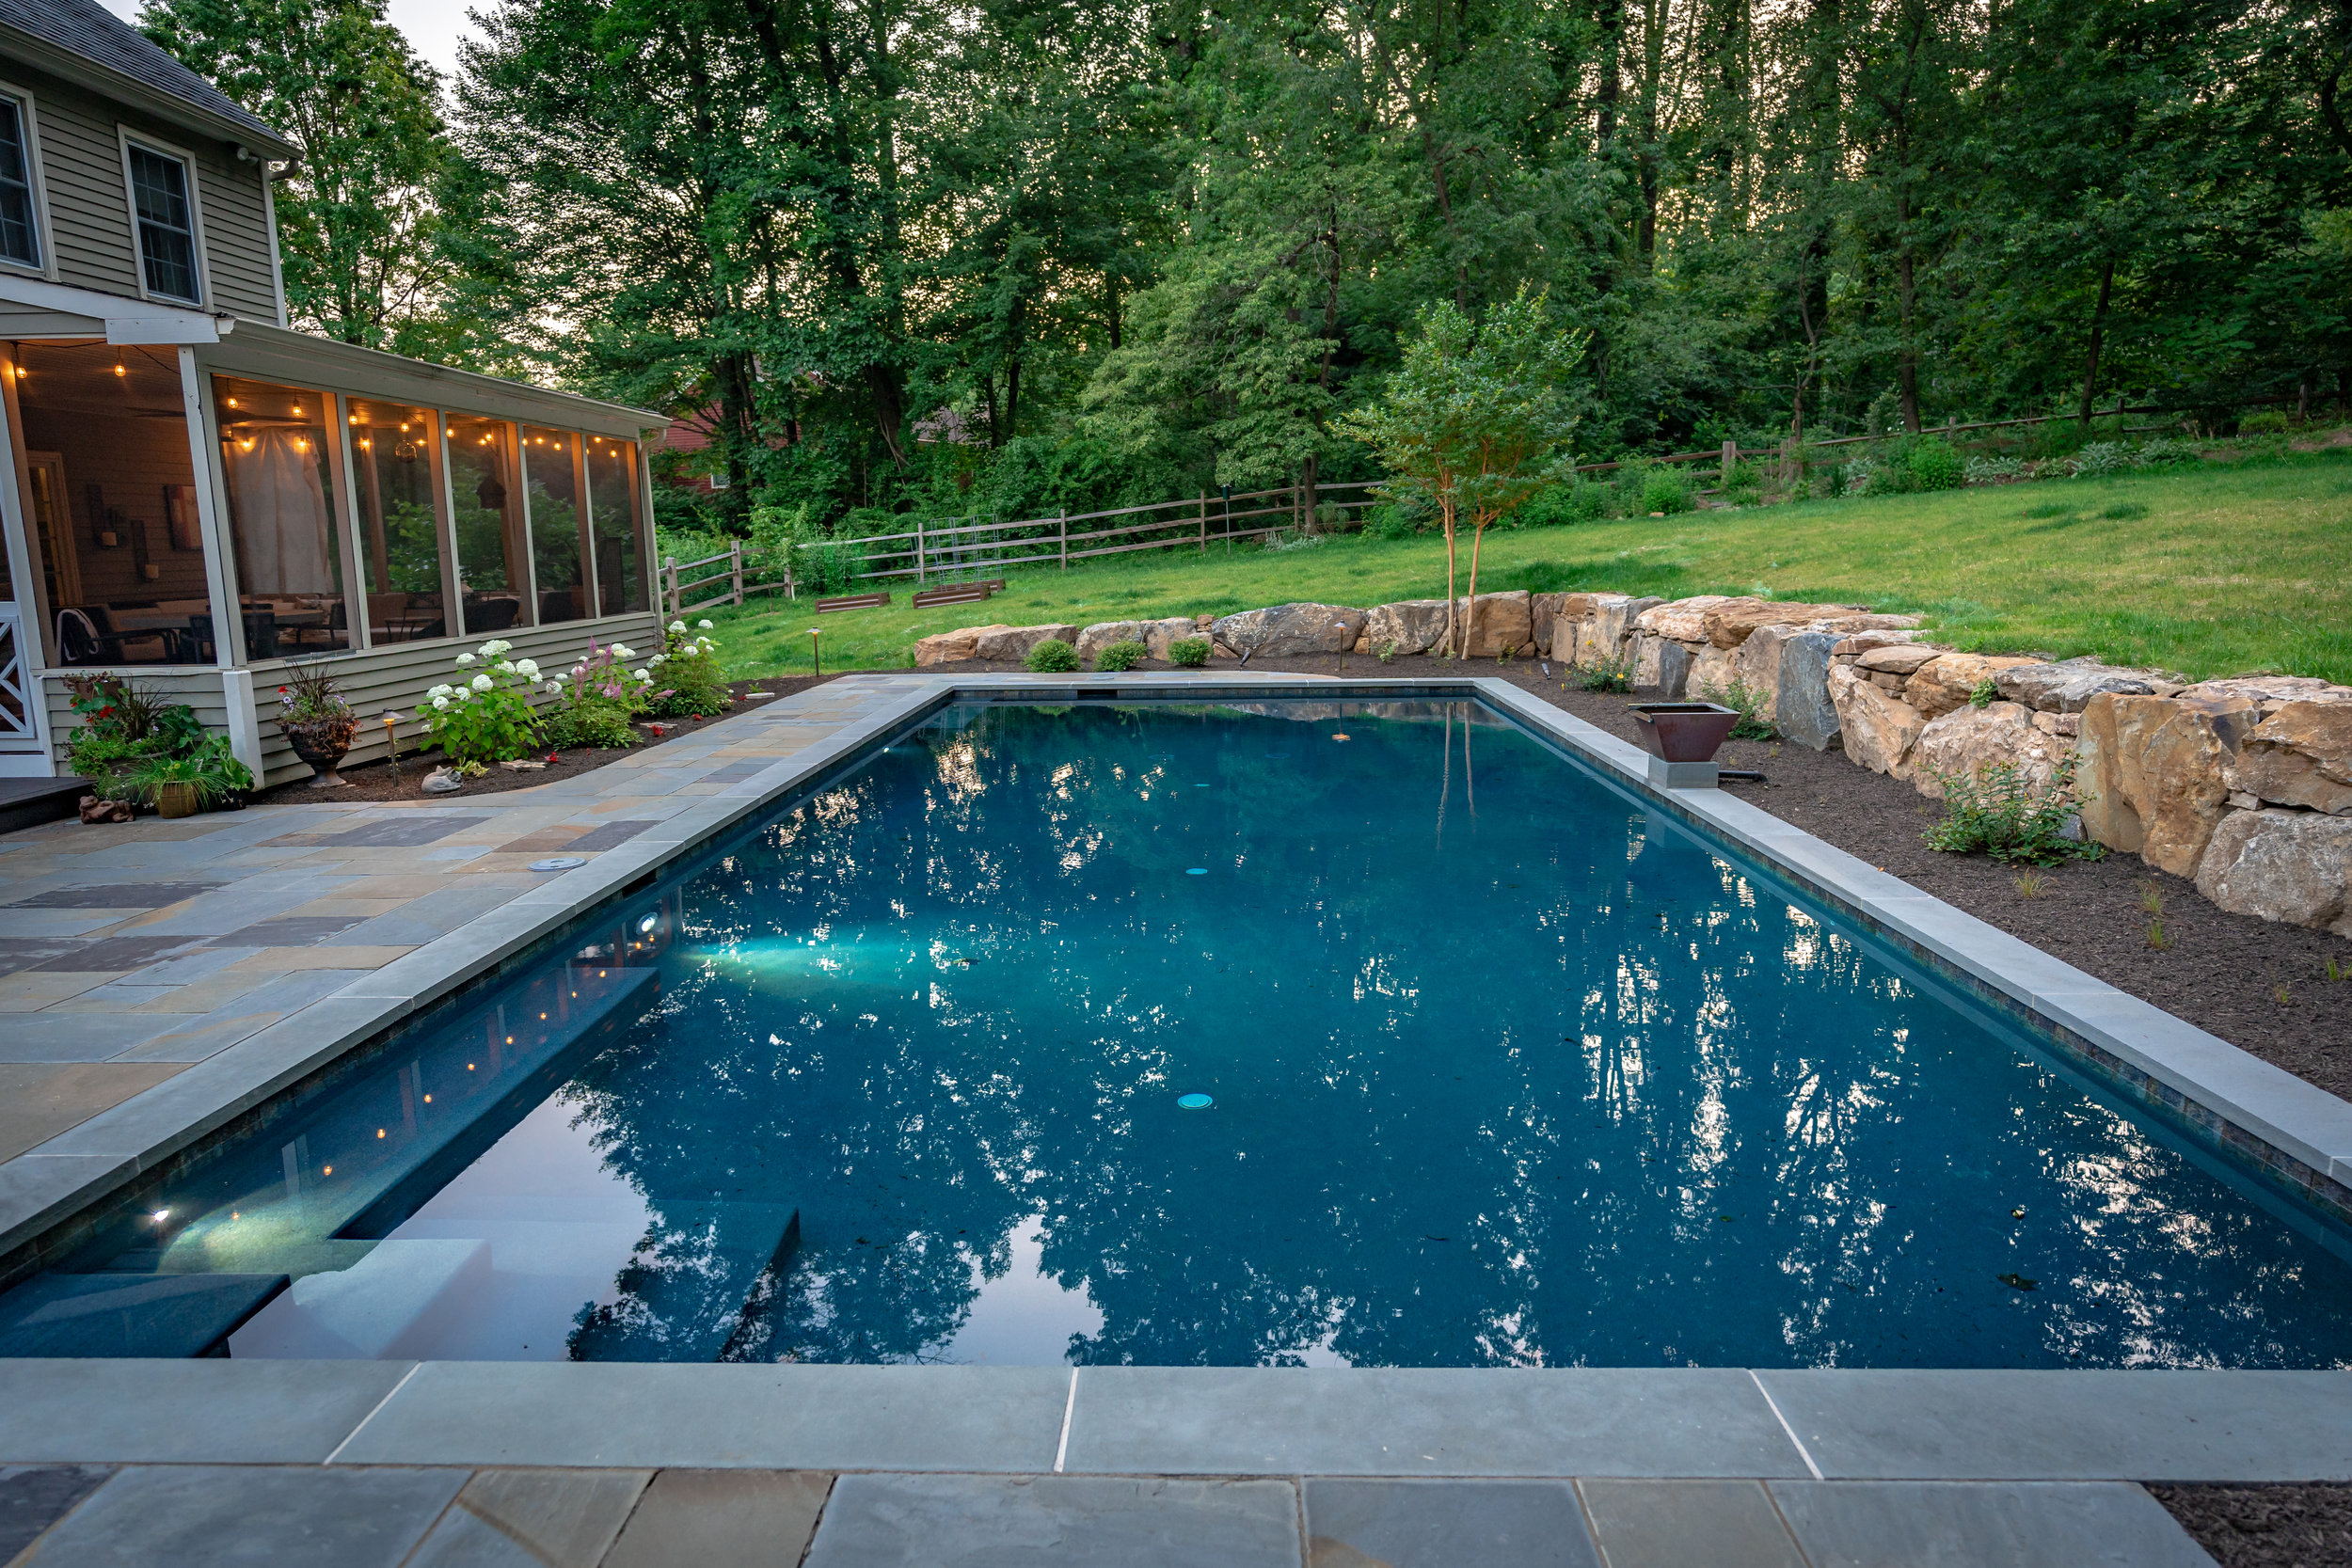 In the summer, there's no better way to relax than with a pool in your own backyard! -